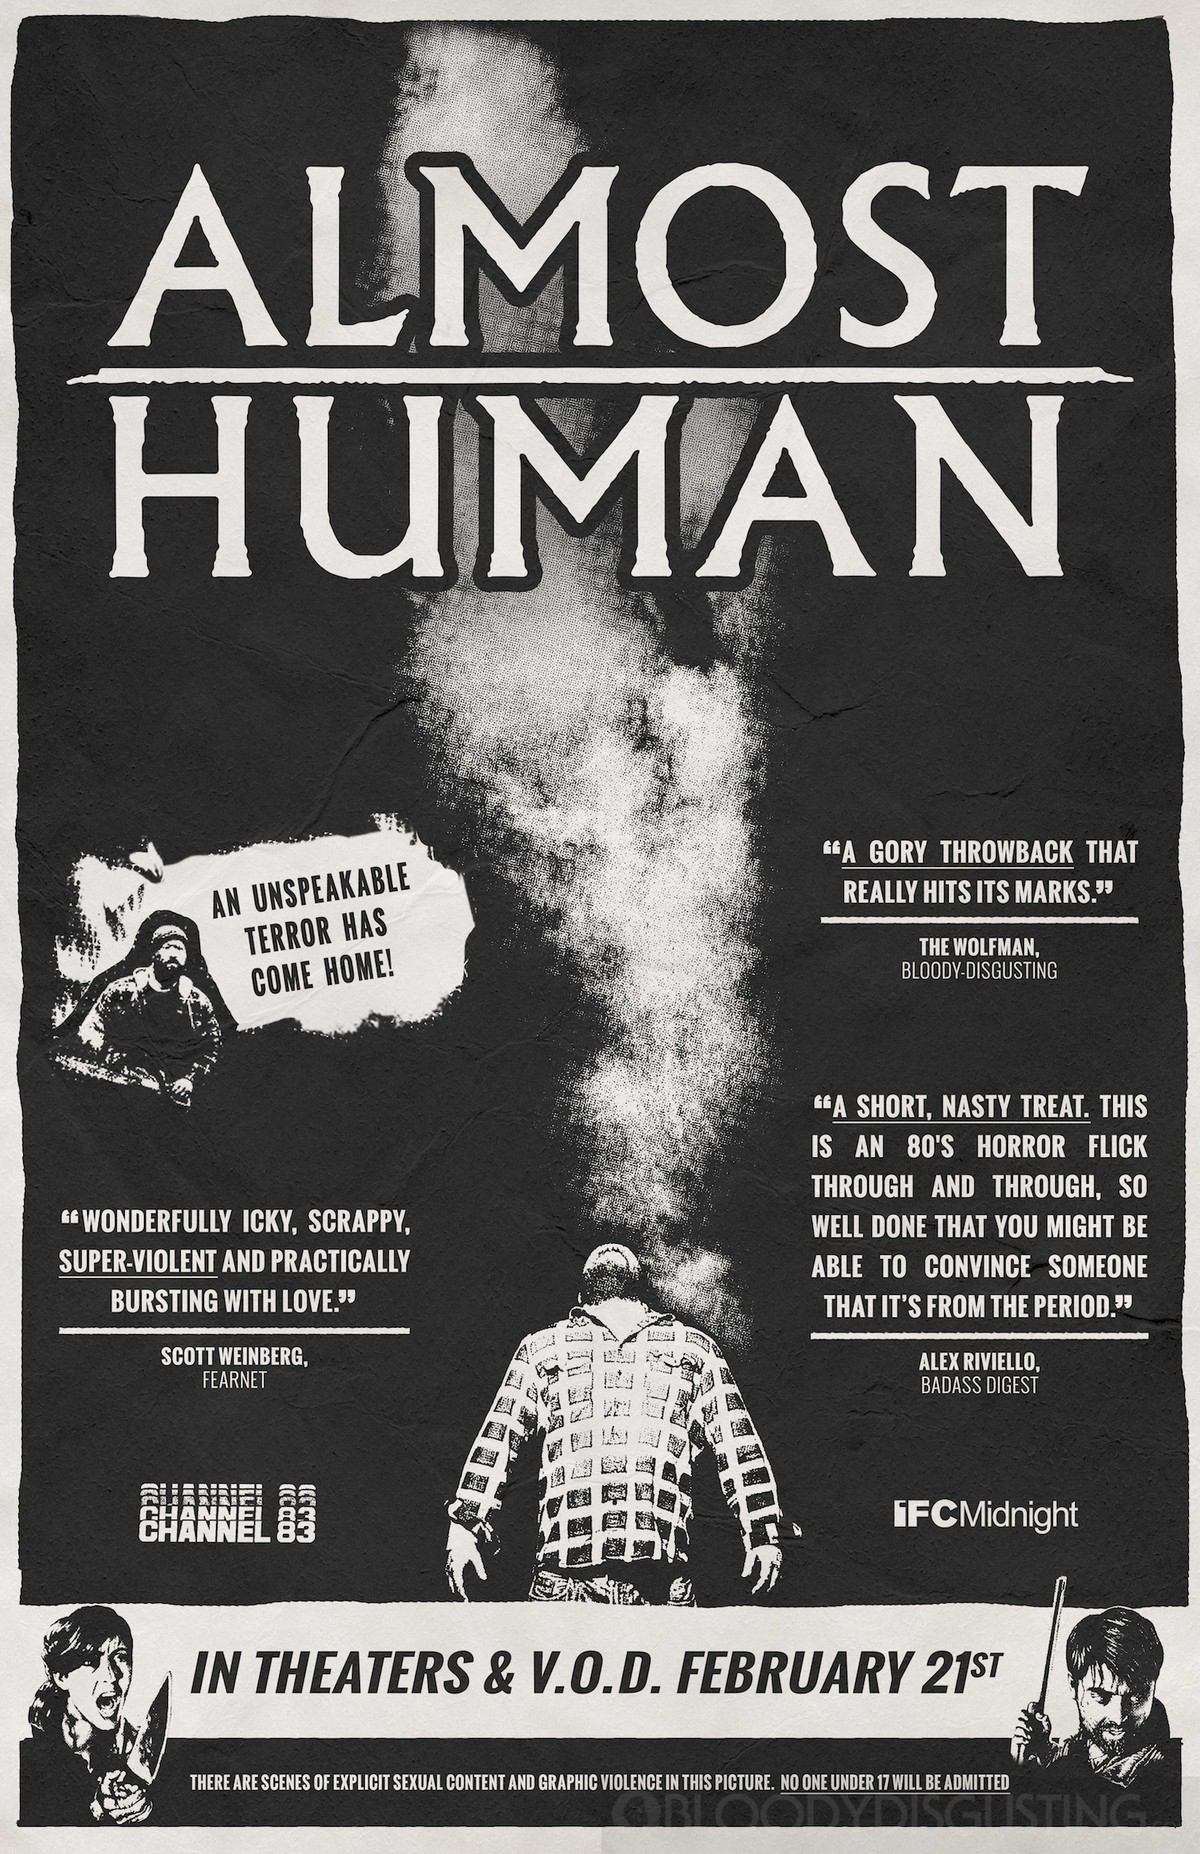 Trailer And Poster For Frightfest ALMOST HUMAN!